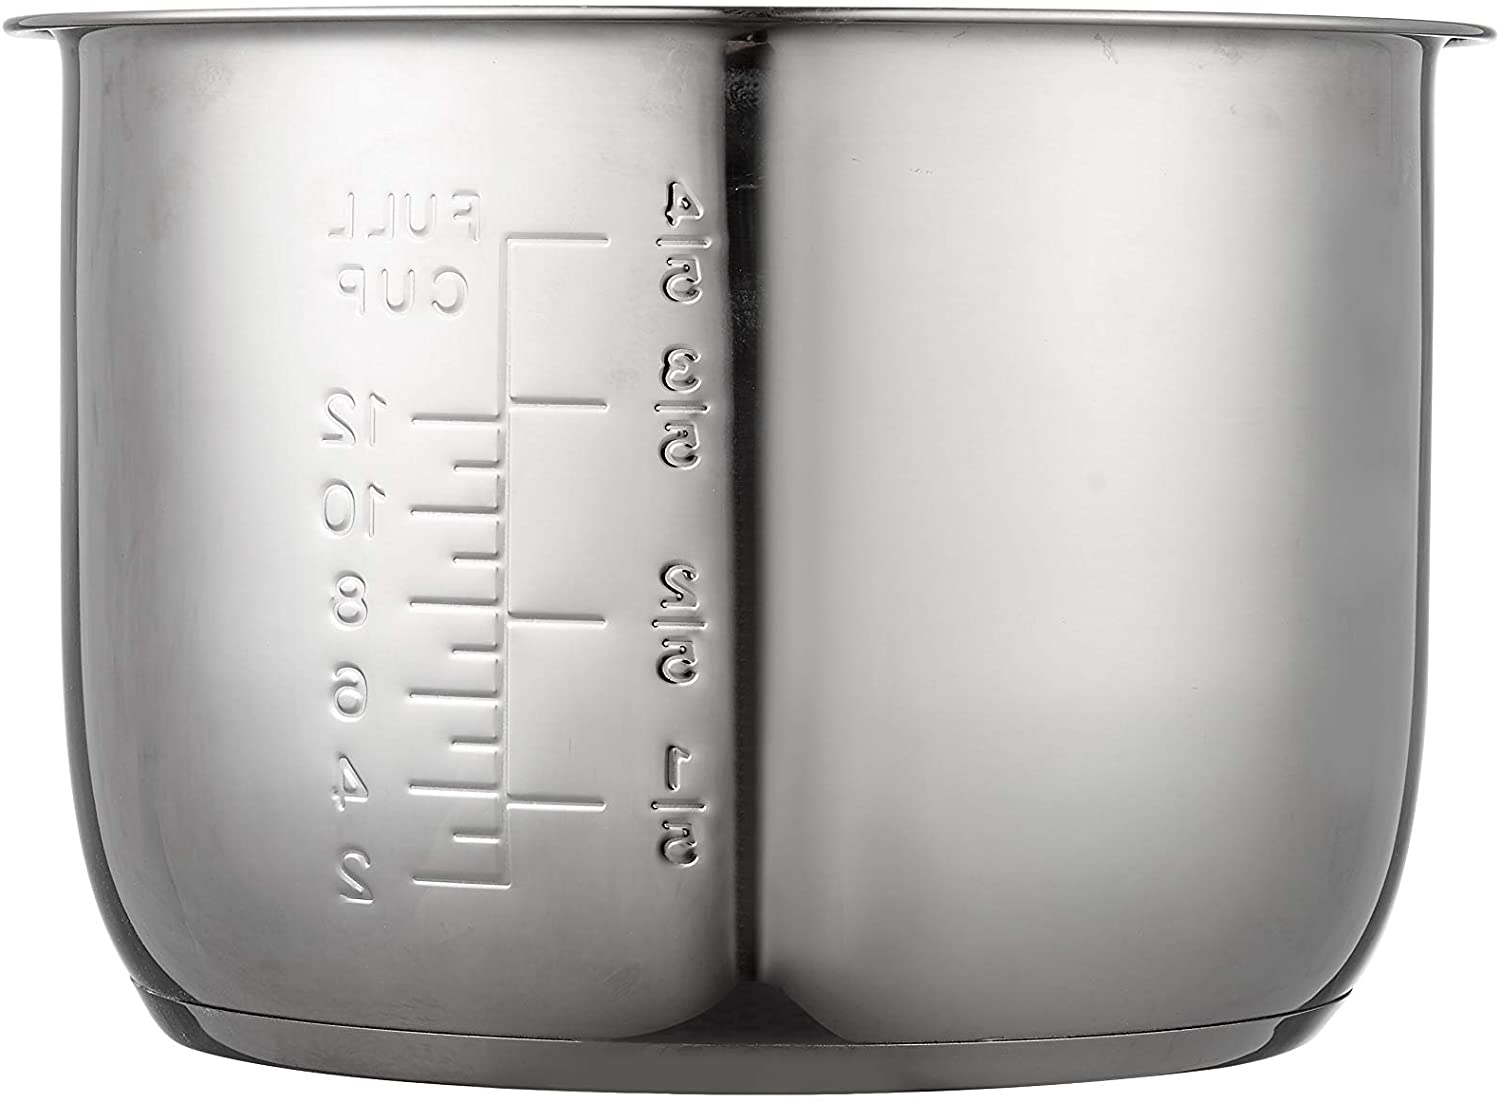 GJS Gourmet Replacement Stainless Steel Inner Pot Compatible with Power Pressure Cooker XL 6 Quart Model PPC770, PPC770-1, PPC771, PRO, WAL1, WAL2 and YBD60-100 (Stainless Steel, 6 Quart)